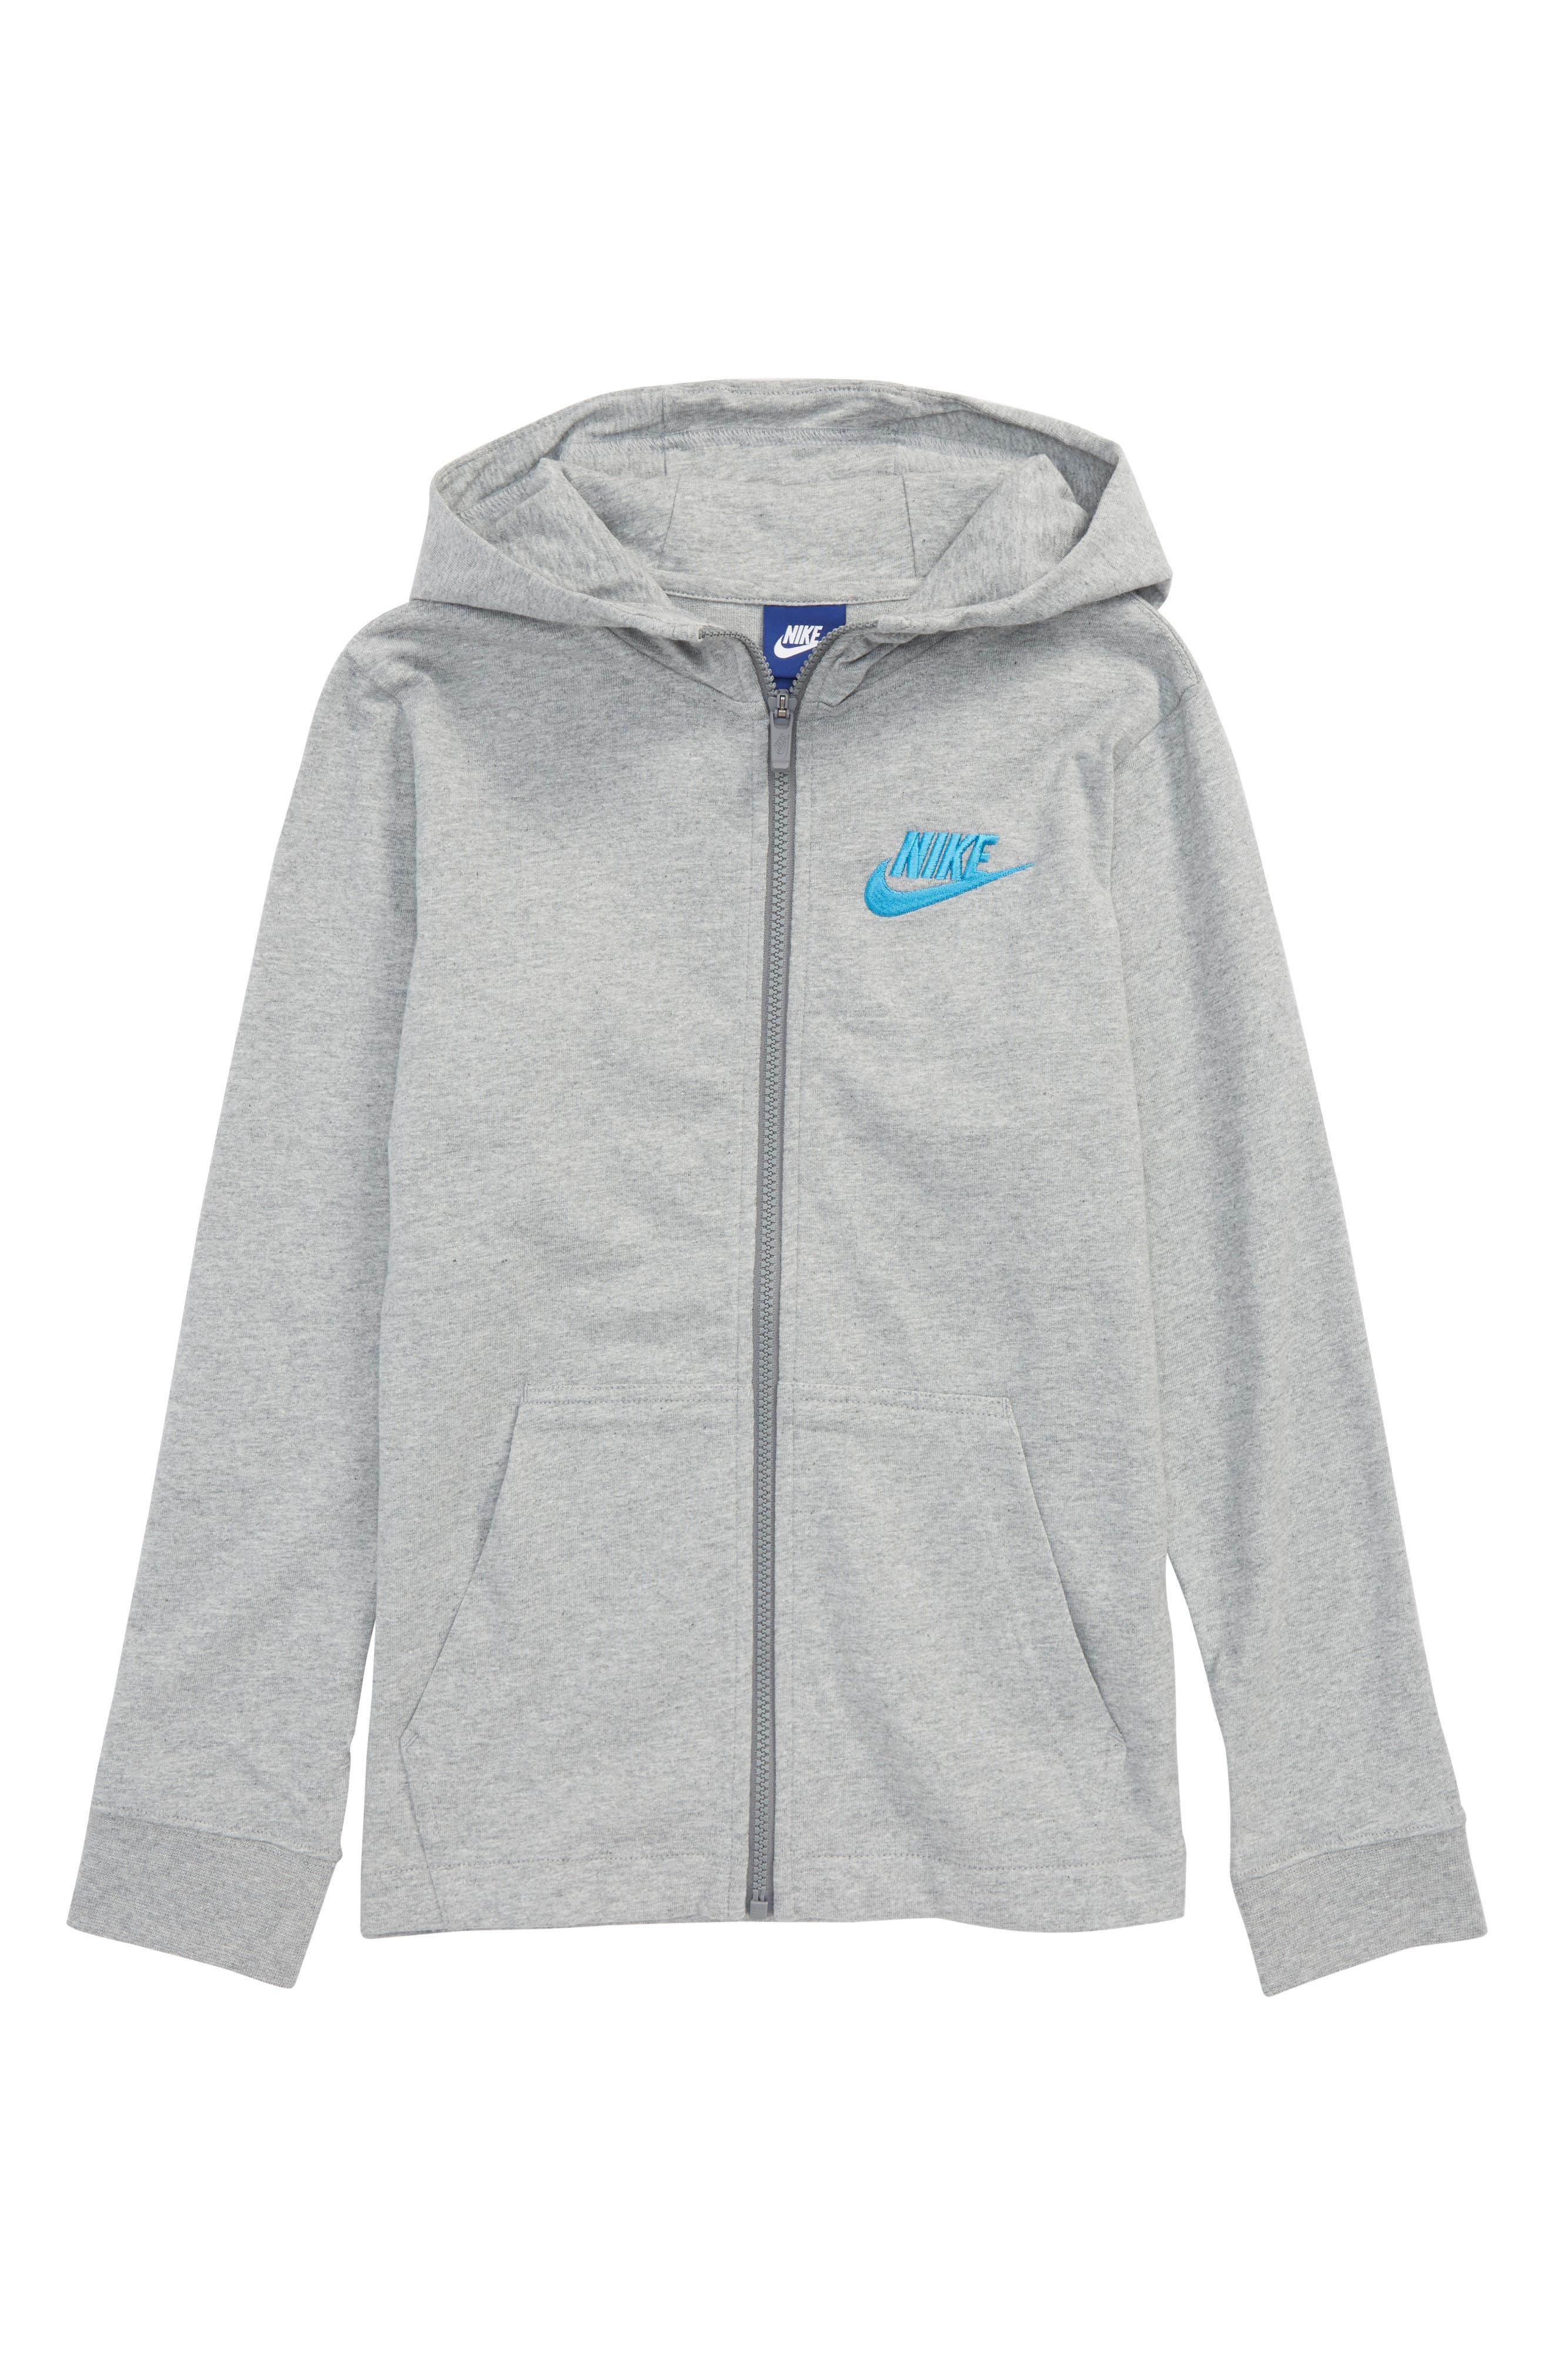 Full Zip Hoodie,                             Main thumbnail 1, color,                             Dark Heather/ Equator Blue